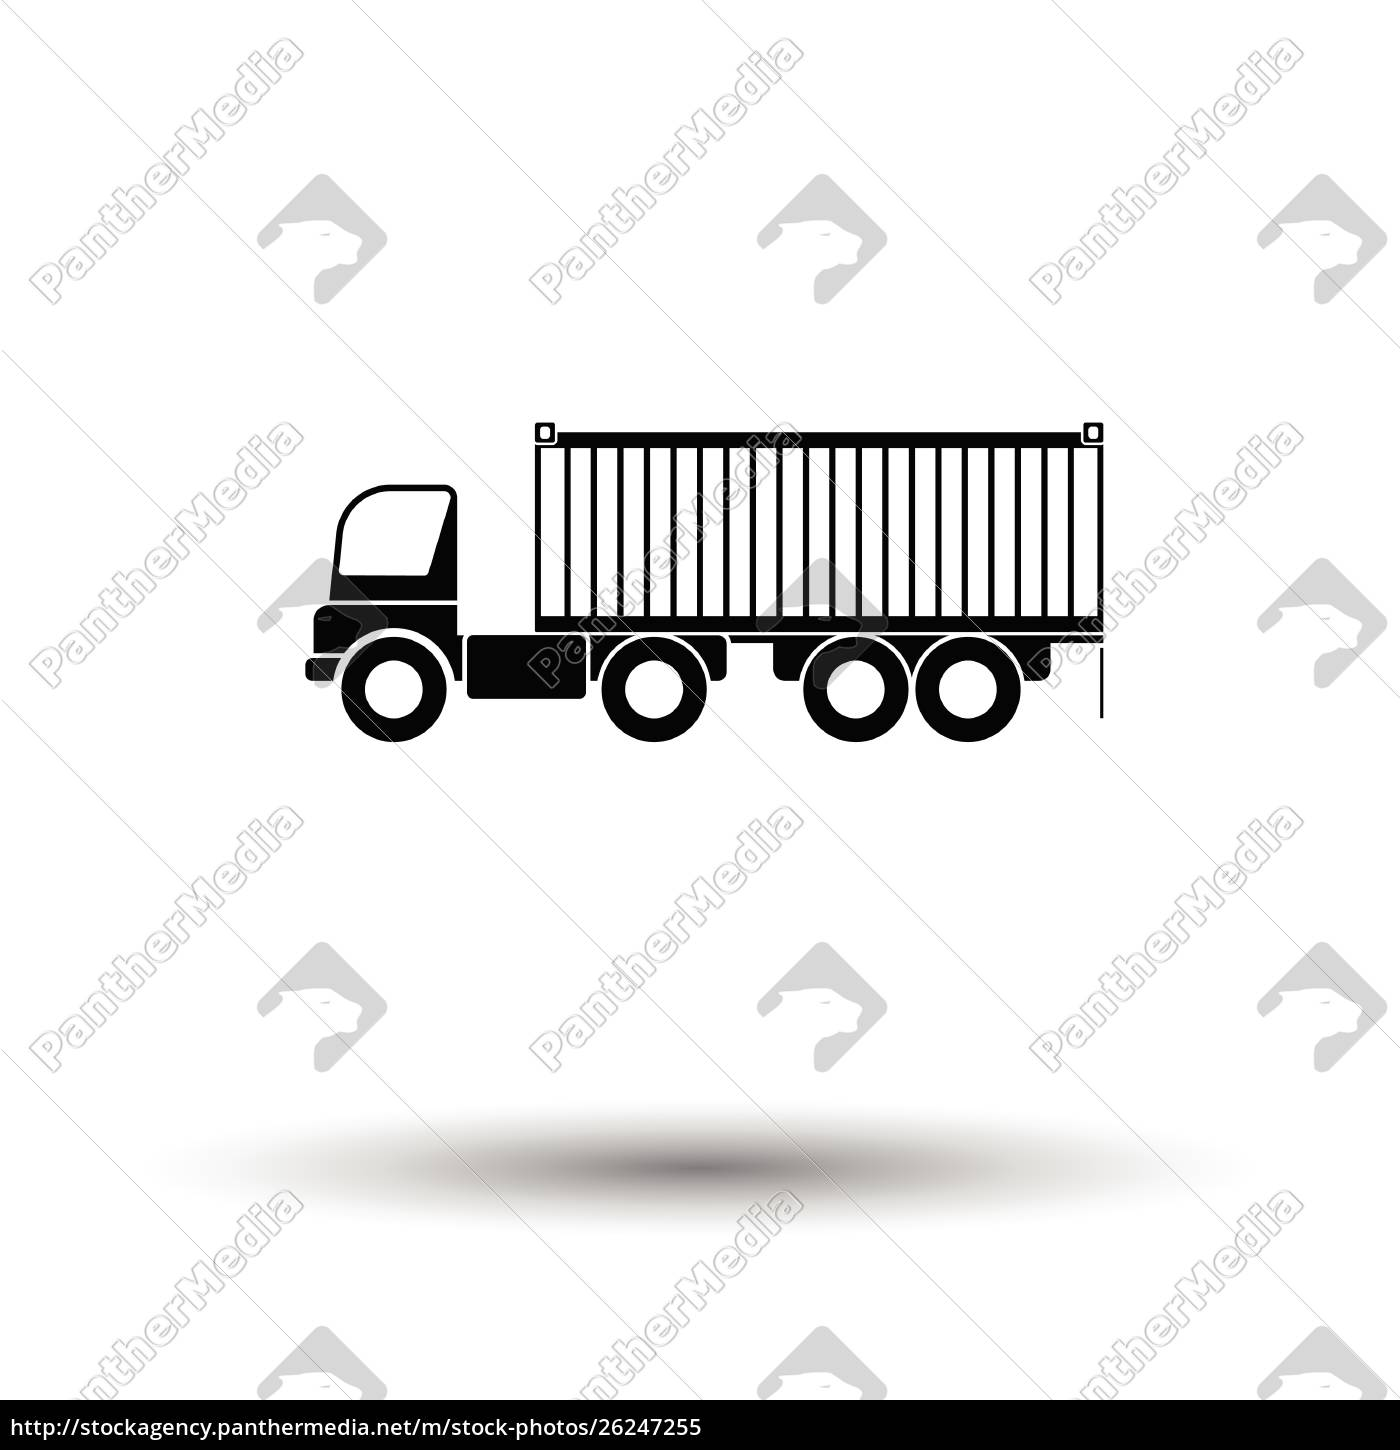 container, truck, icon., white, background, with - 26247255